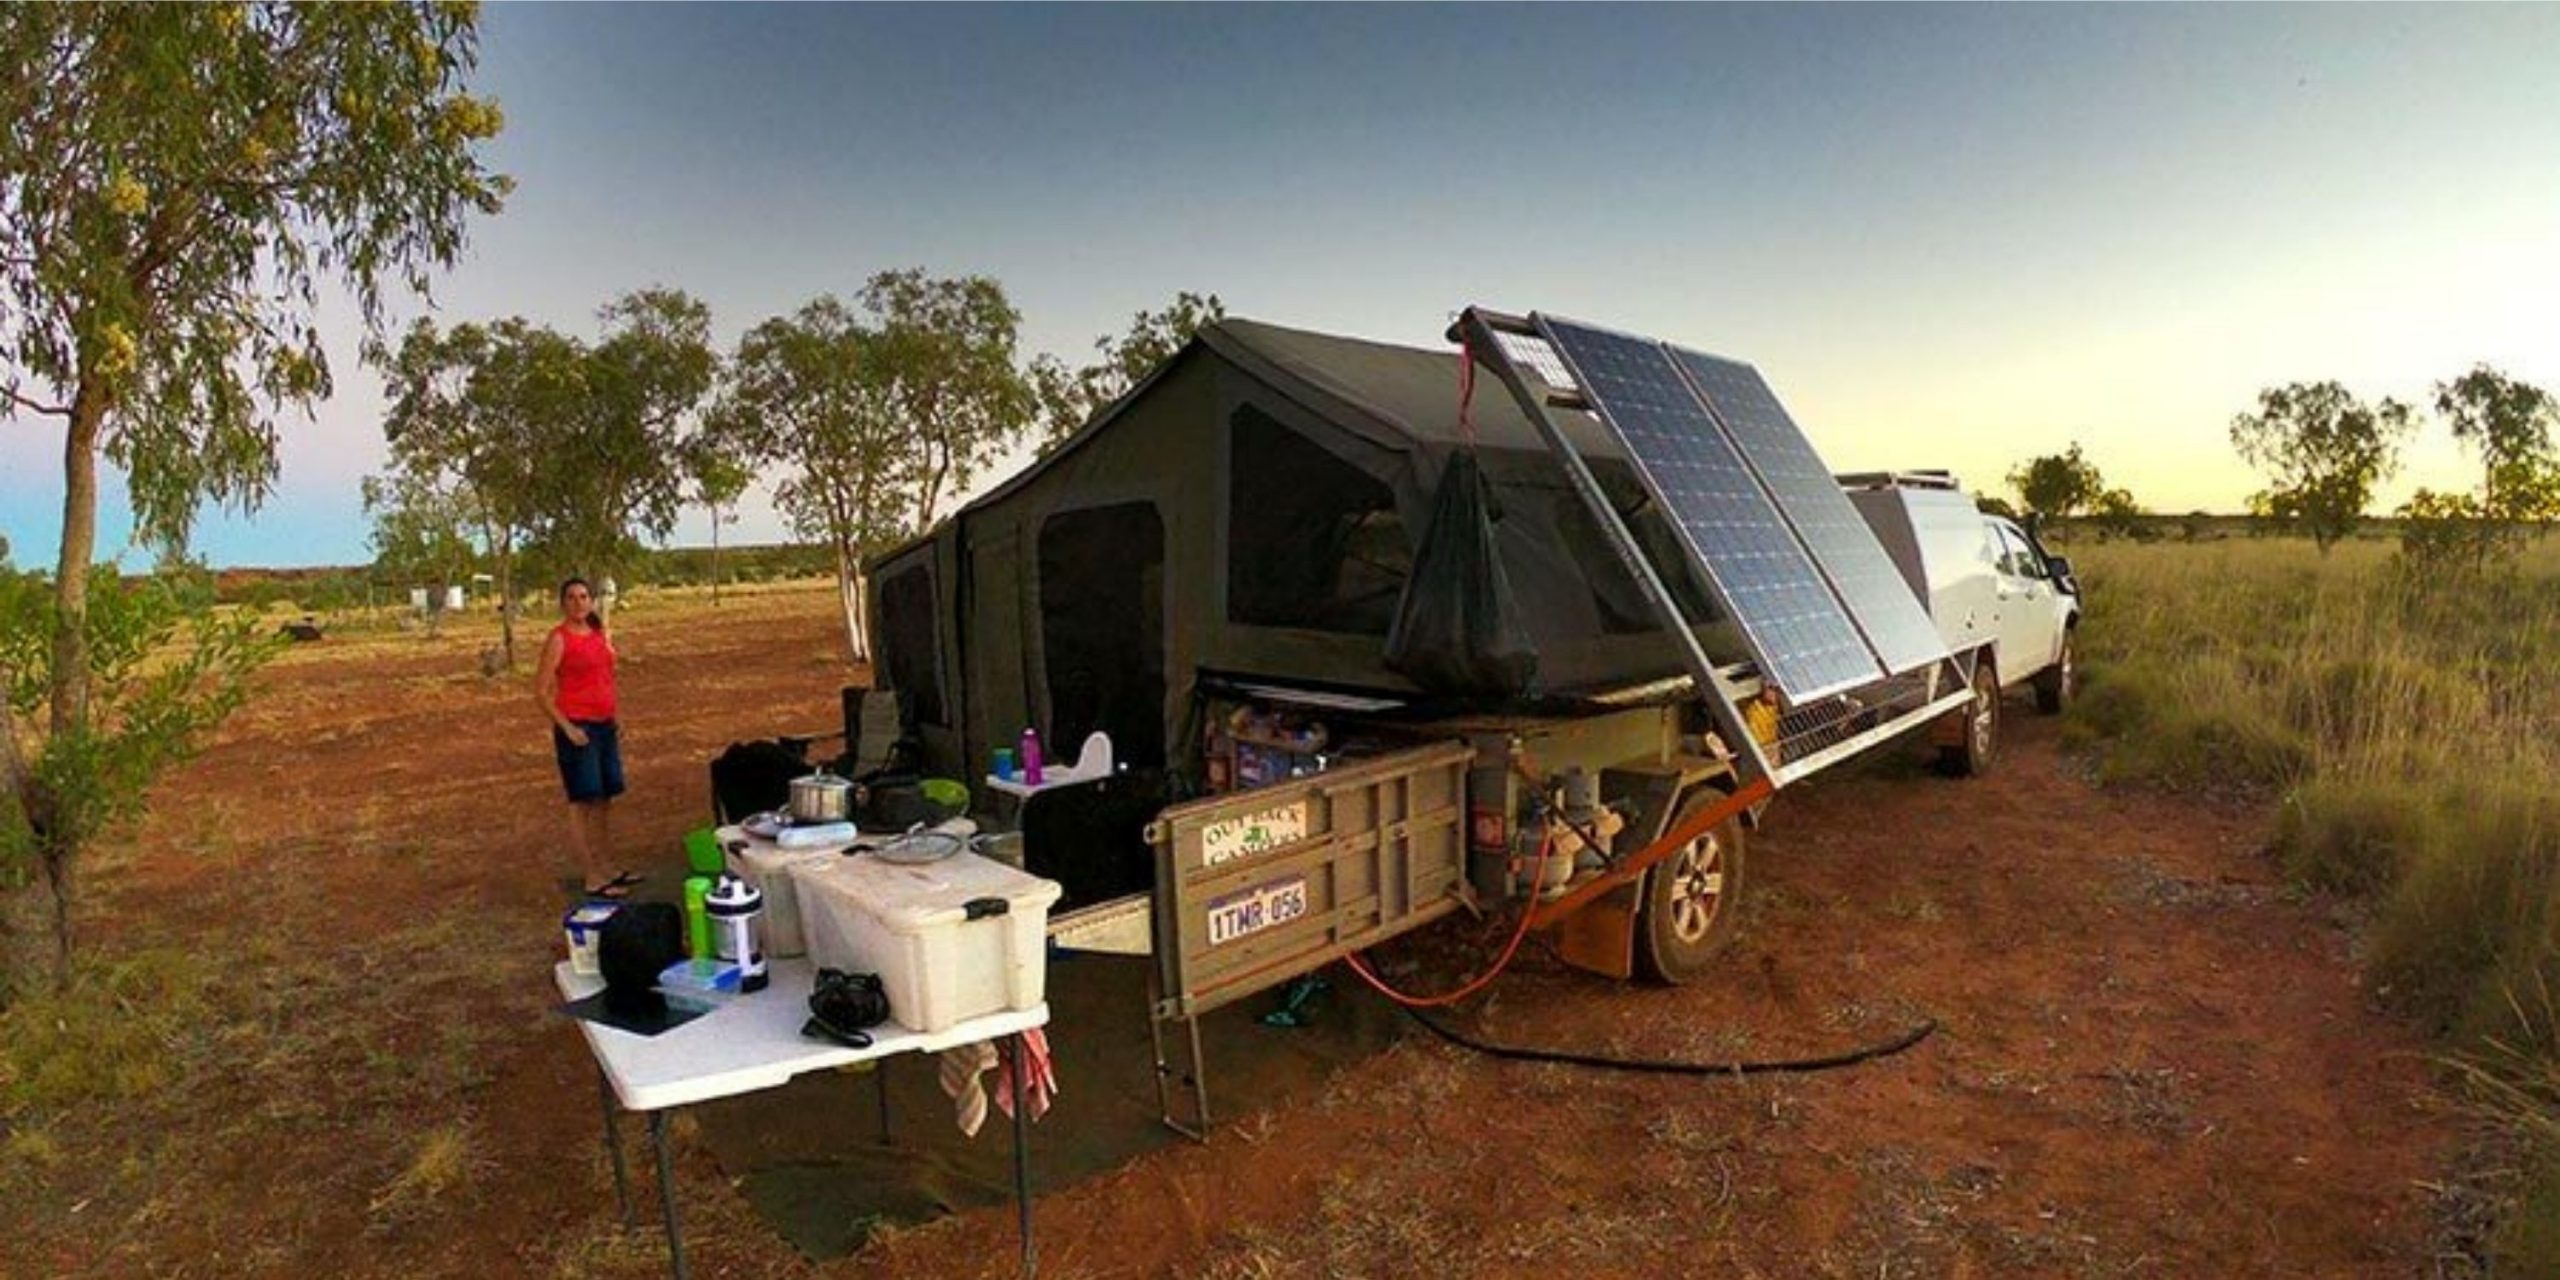 Best Solar-powered Gadgets That Can Help You Survive the Wilderness